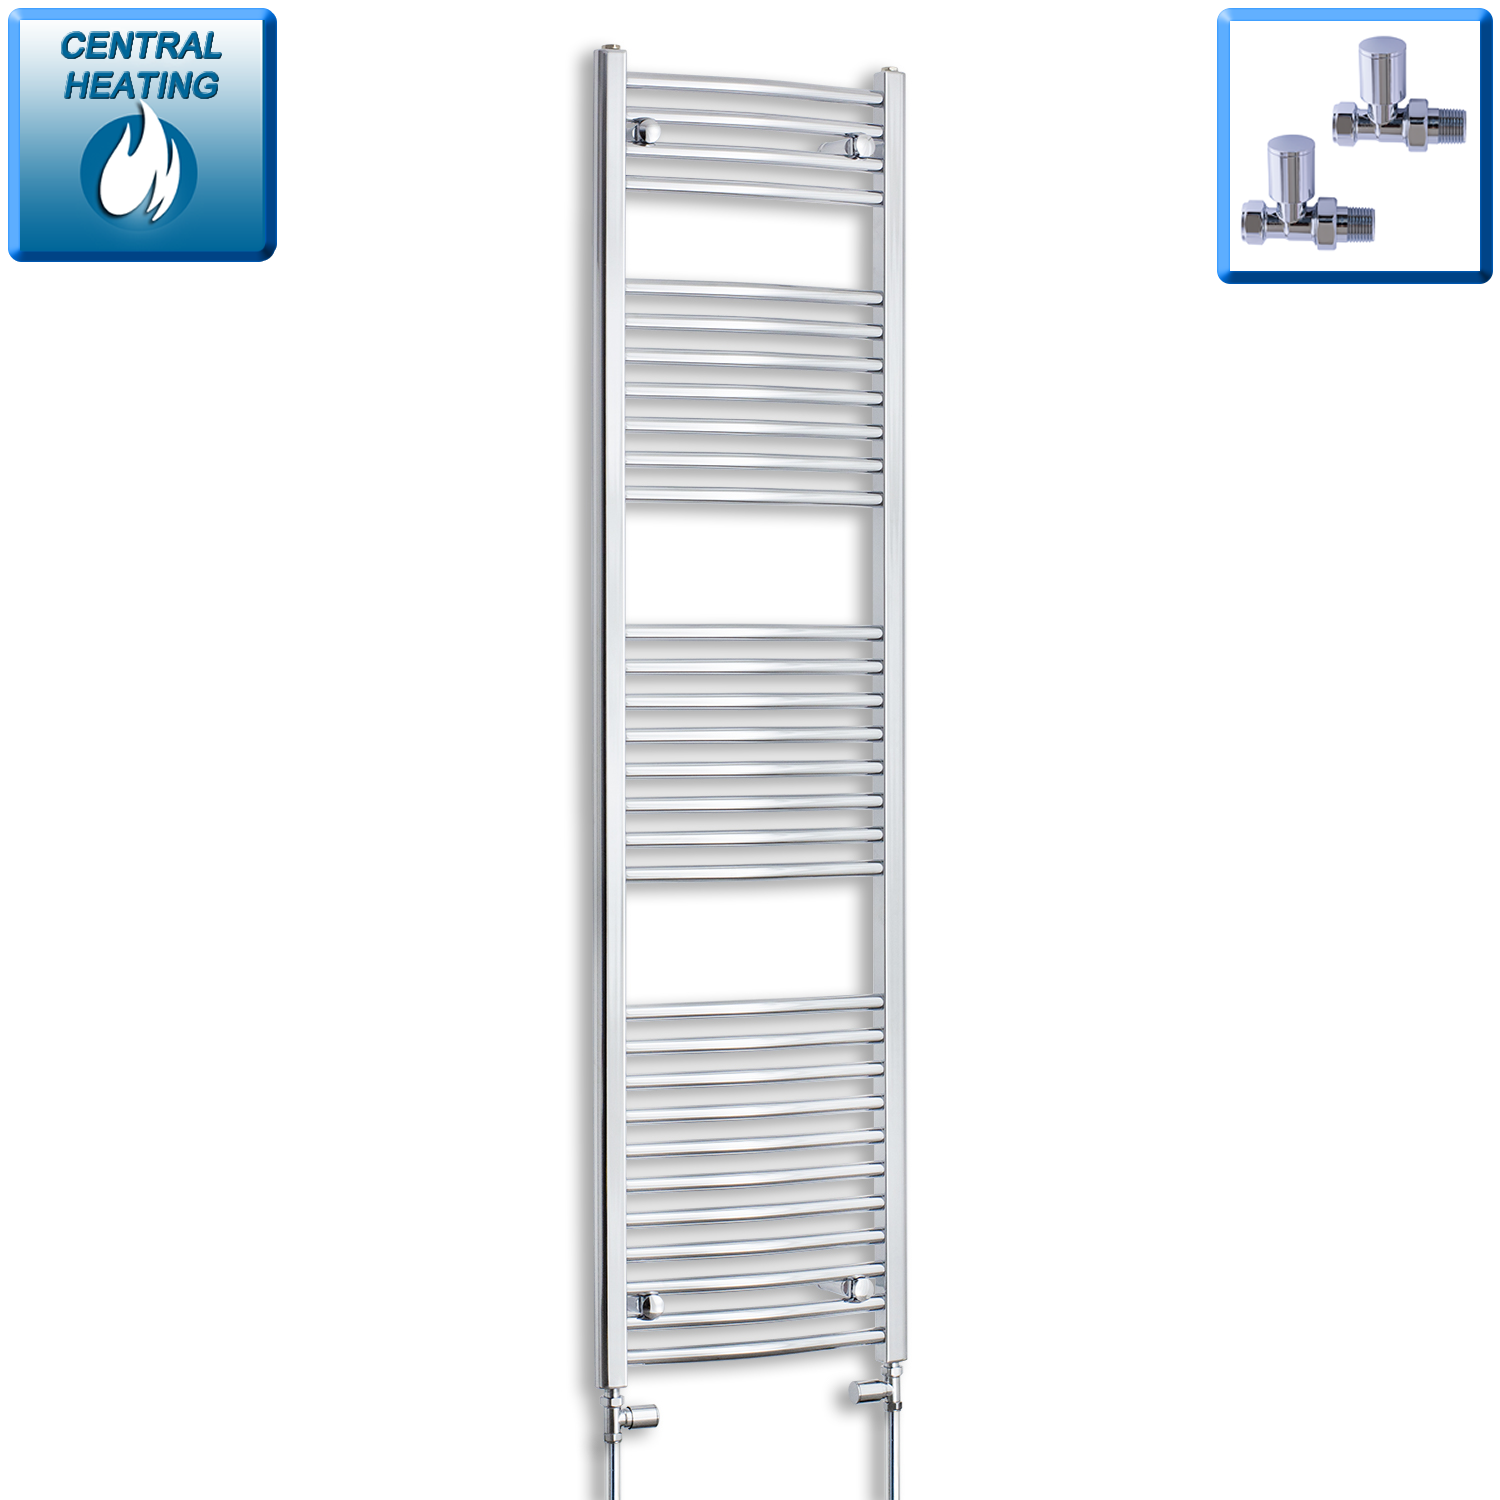 450mm Wide 1700mm High Curved Chrome Heated Towel Rail Radiator HTR,With Straight Valve